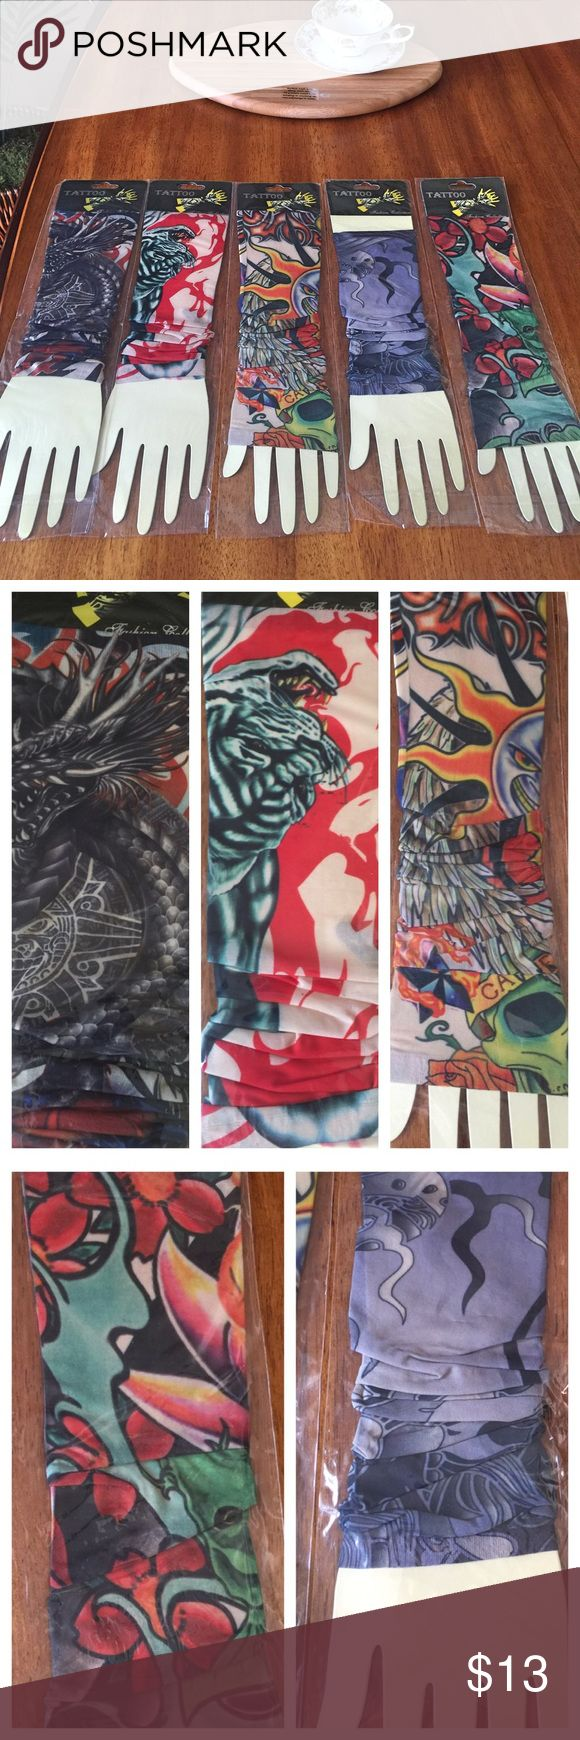 Bundle of 5 fake tattoo sleeves Never used Accessories